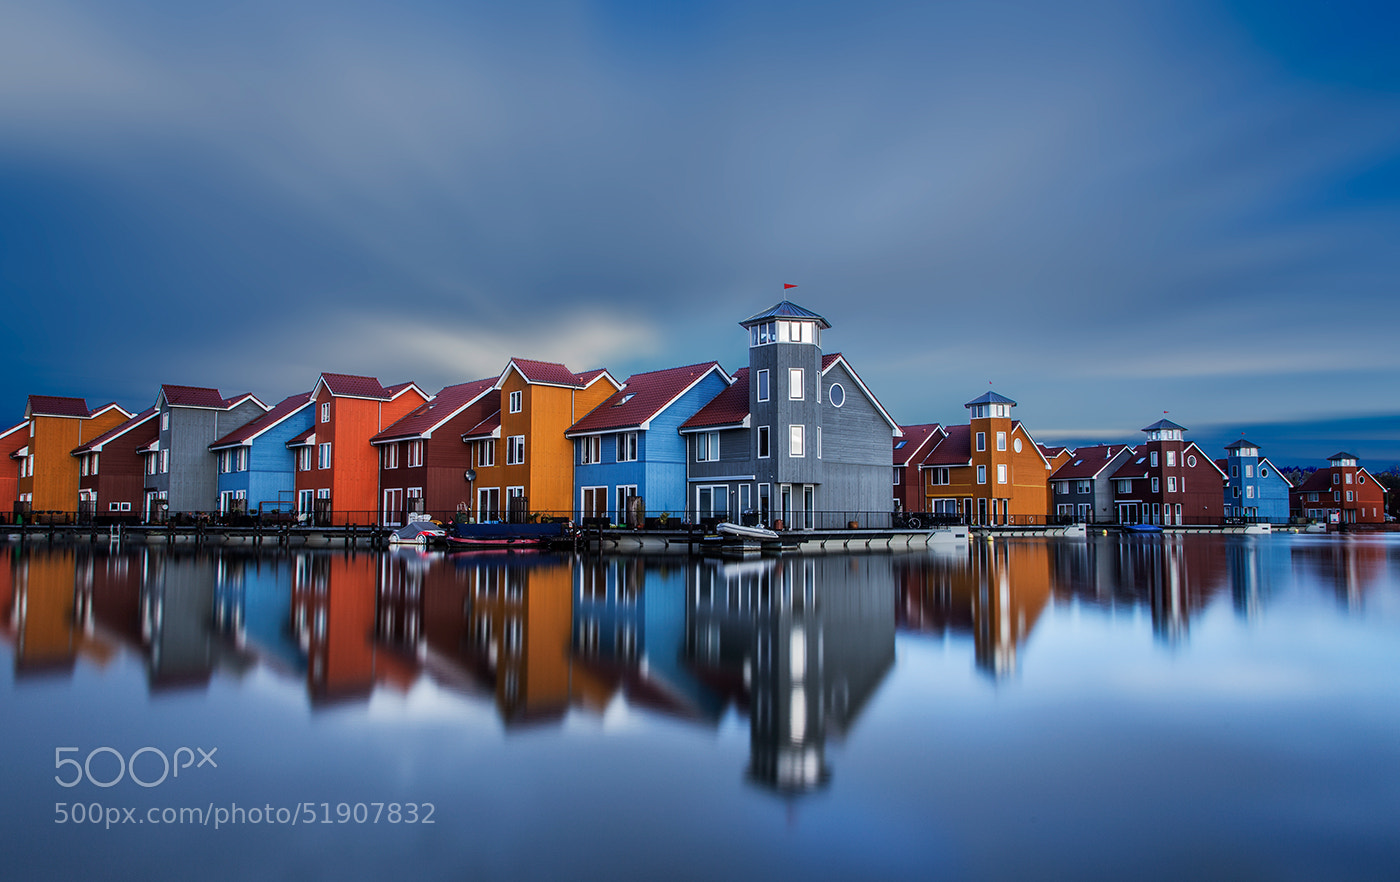 Photograph UN-Dutch Colorful by Mohamed Idrissi on 500px